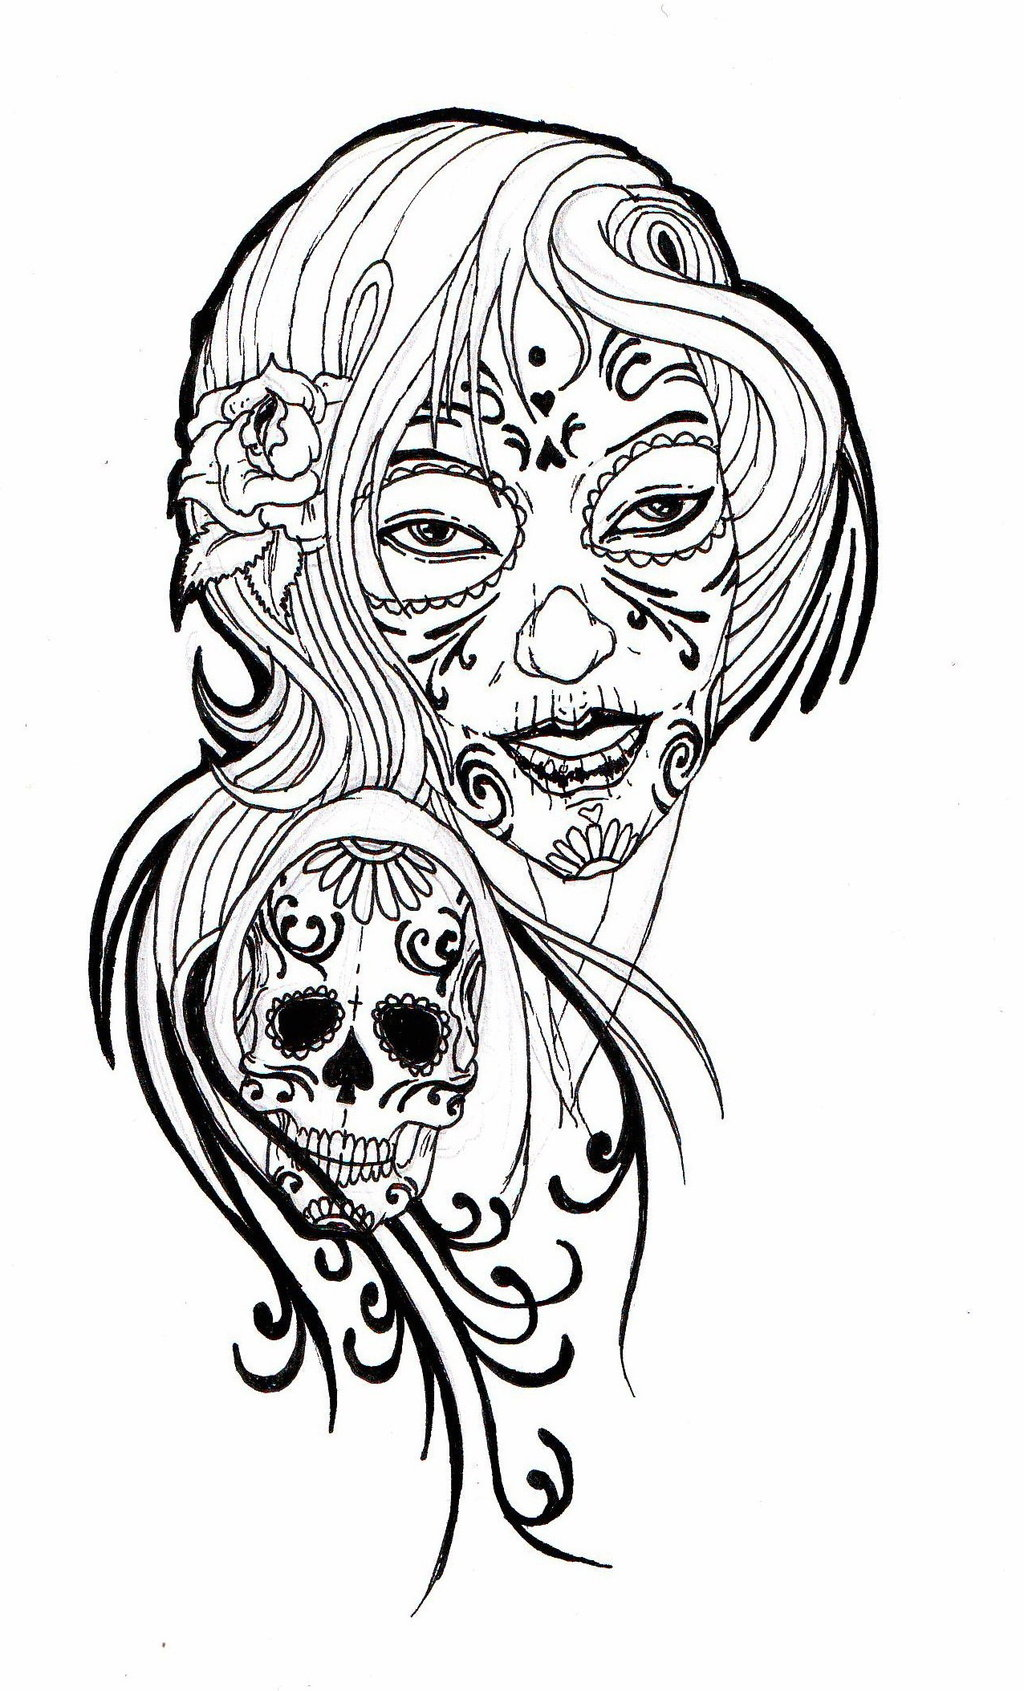 Woman skull tattoo clipart black and white image black and white Free Pictures Of Skull Tattoos, Download Free Clip Art, Free ... image black and white